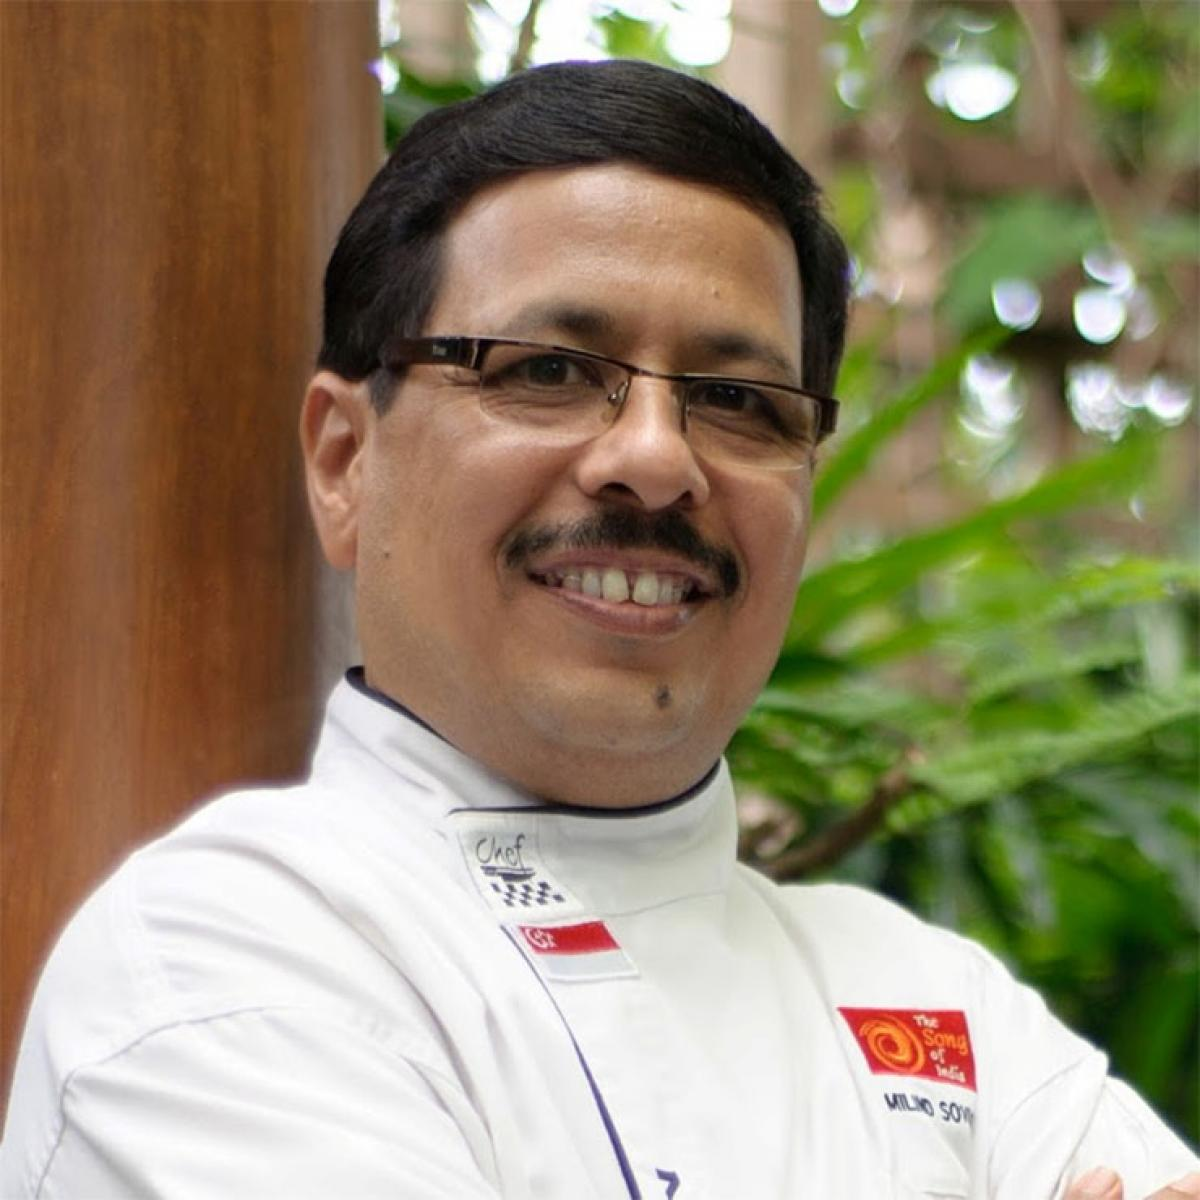 Food shows cannot replace good old cookbooks: Chef